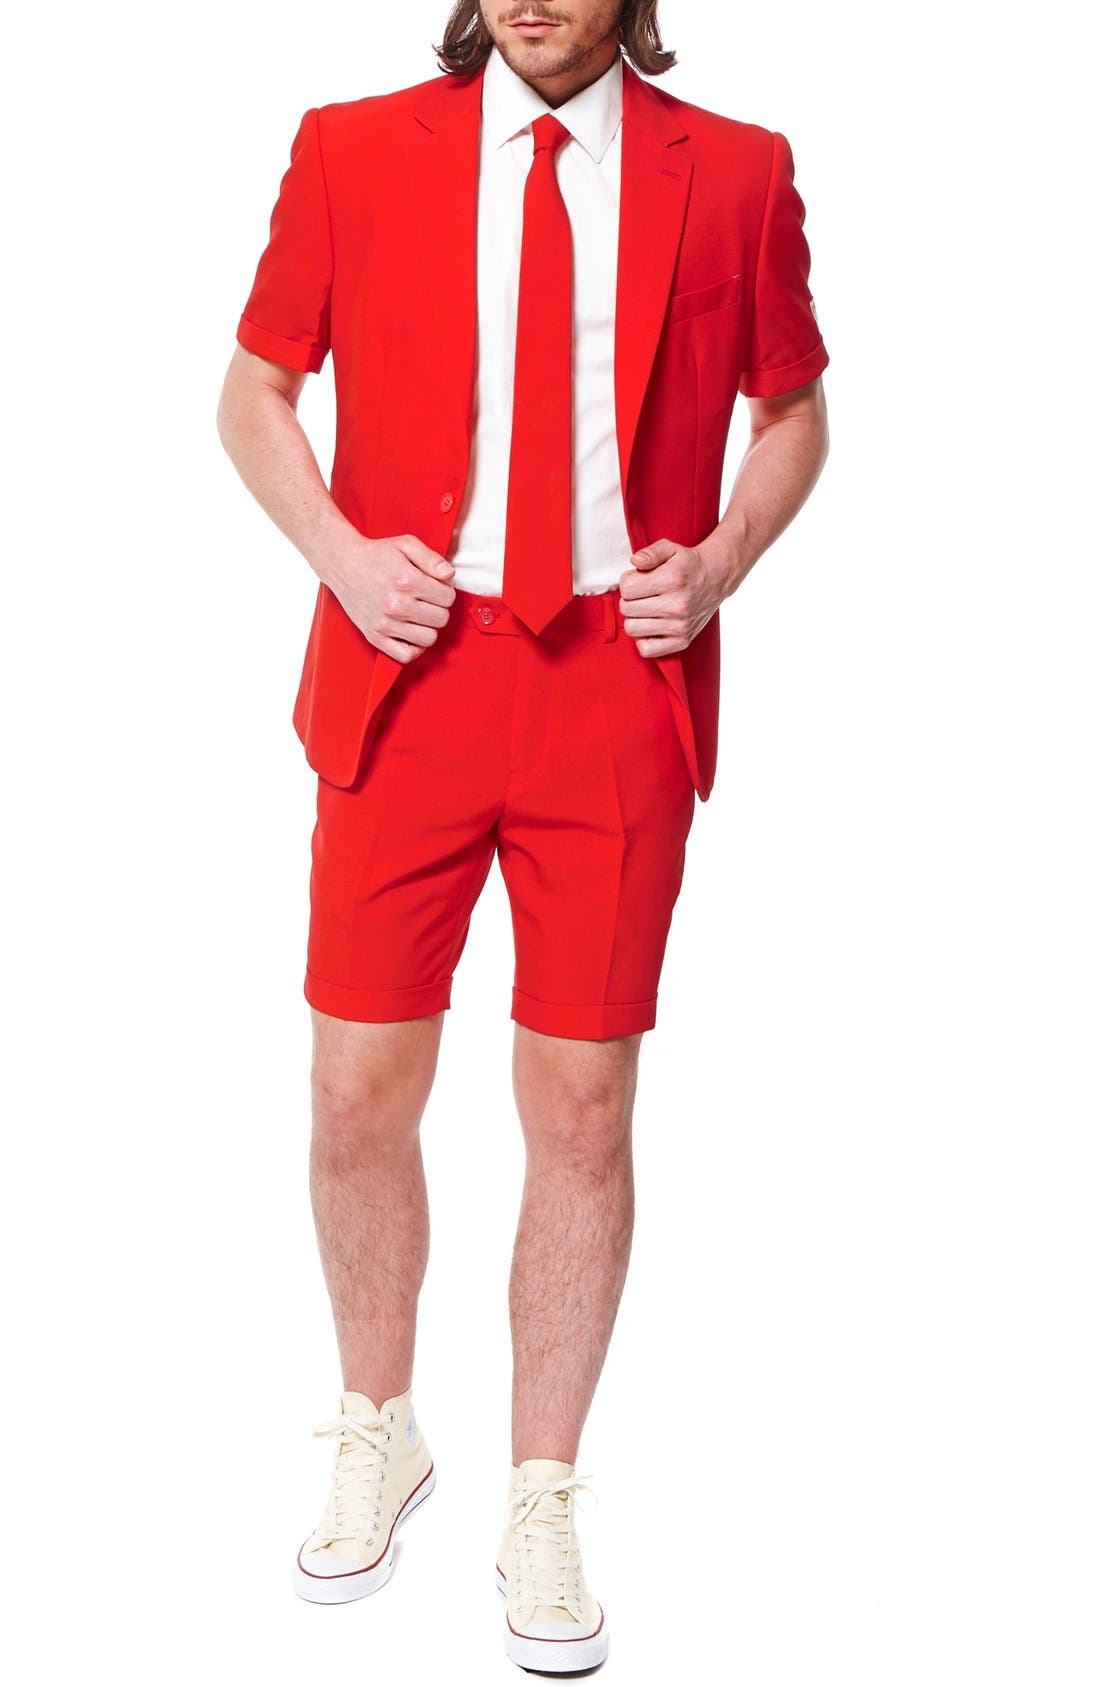 Main Image - OppoSuits 'Summer Red Devil' Trim Fit Short Suit with Tie